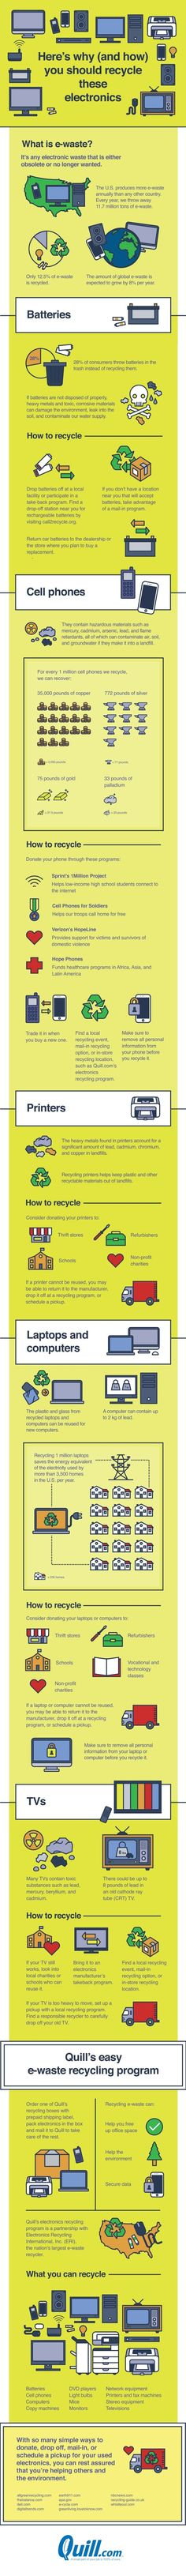 How to Recycle Electronics And Why You Should - #infographic